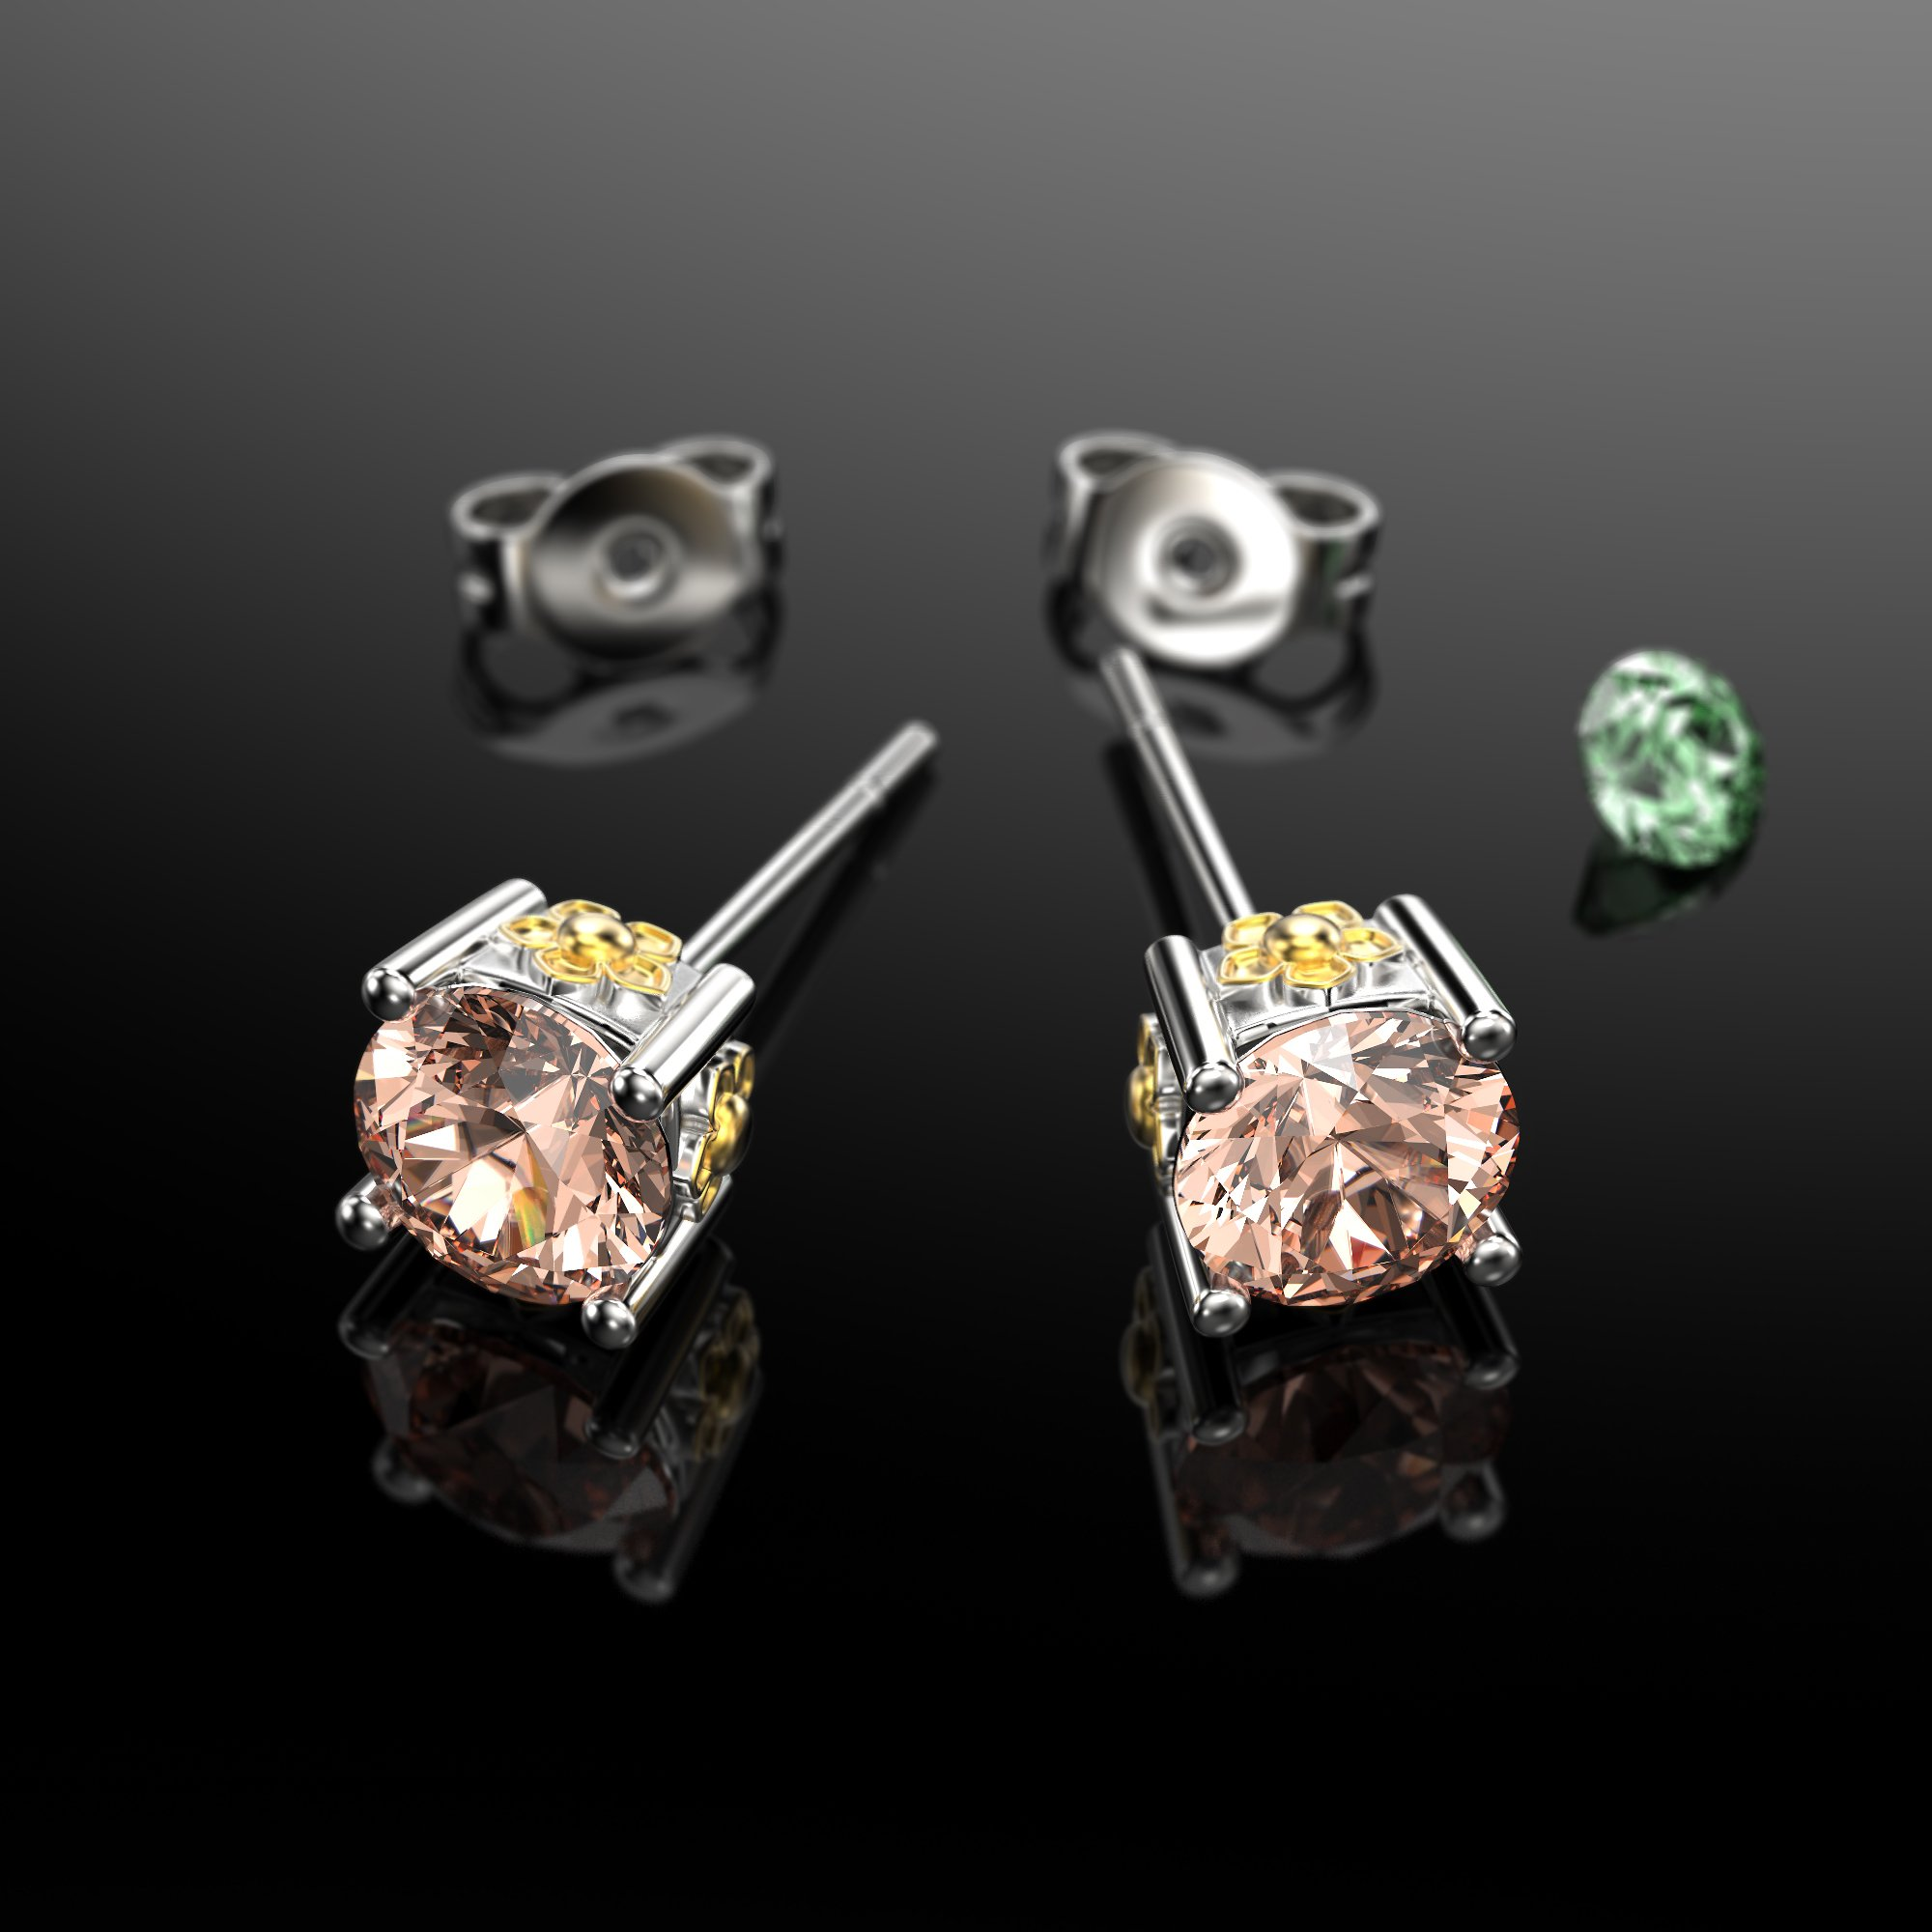 VAN LECONY White Gold and Gold Plated Flower Stud Earrings,Light Peach by VAN LECONY (Image #3)